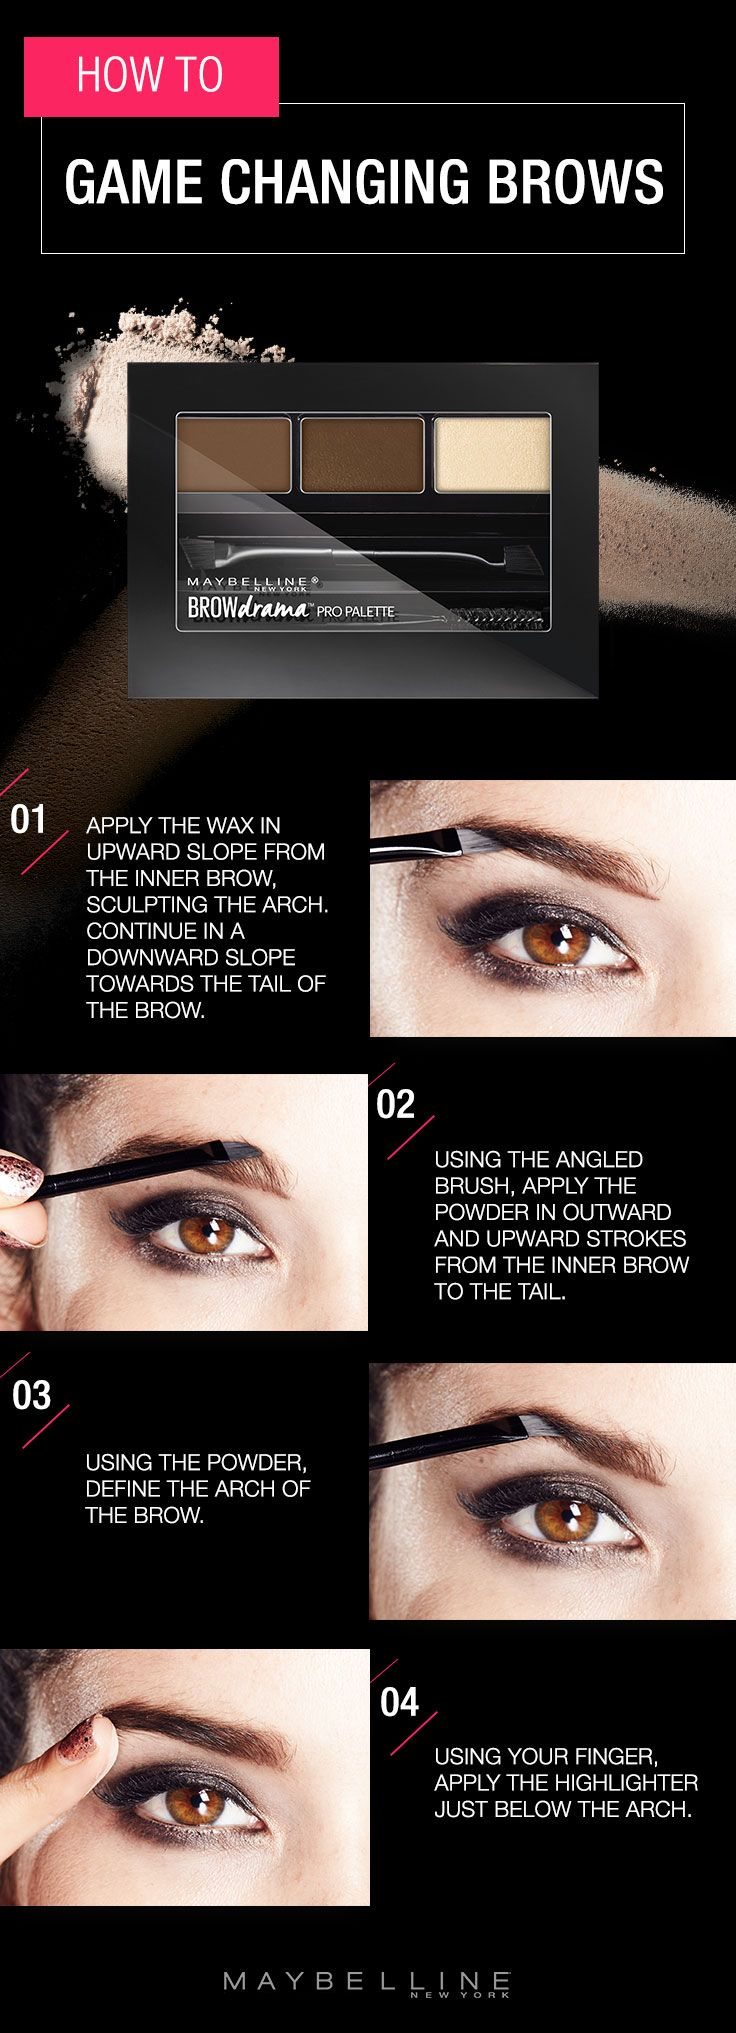 22c0b45c40a Here is how to have a serious brow shaping game with Maybelline Brow Drama  Pro Palette following this step-by-step eye brow makeup tutorial.